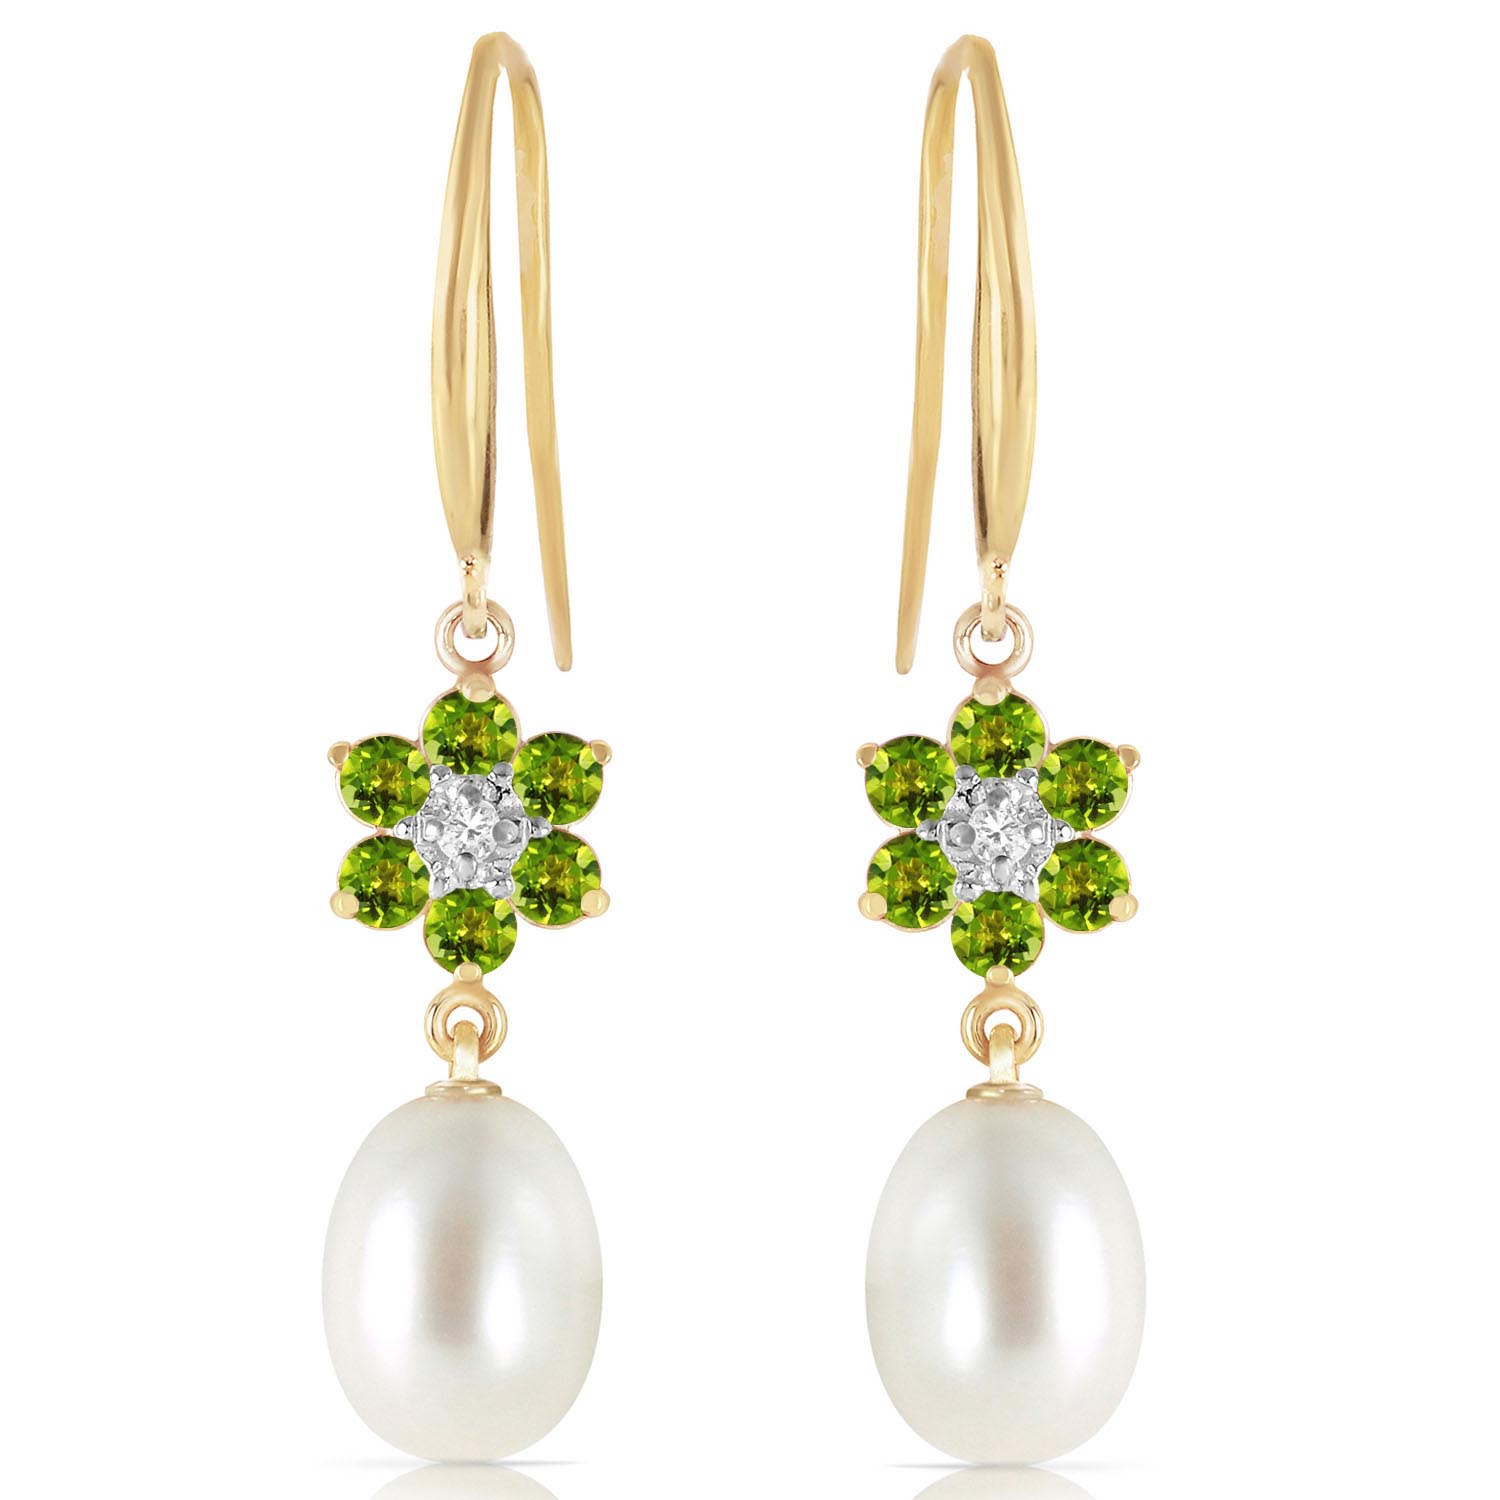 Pearl, Diamond and Peridot Daisy Chain Drop Earrings 8.95ctw in 14K Gold